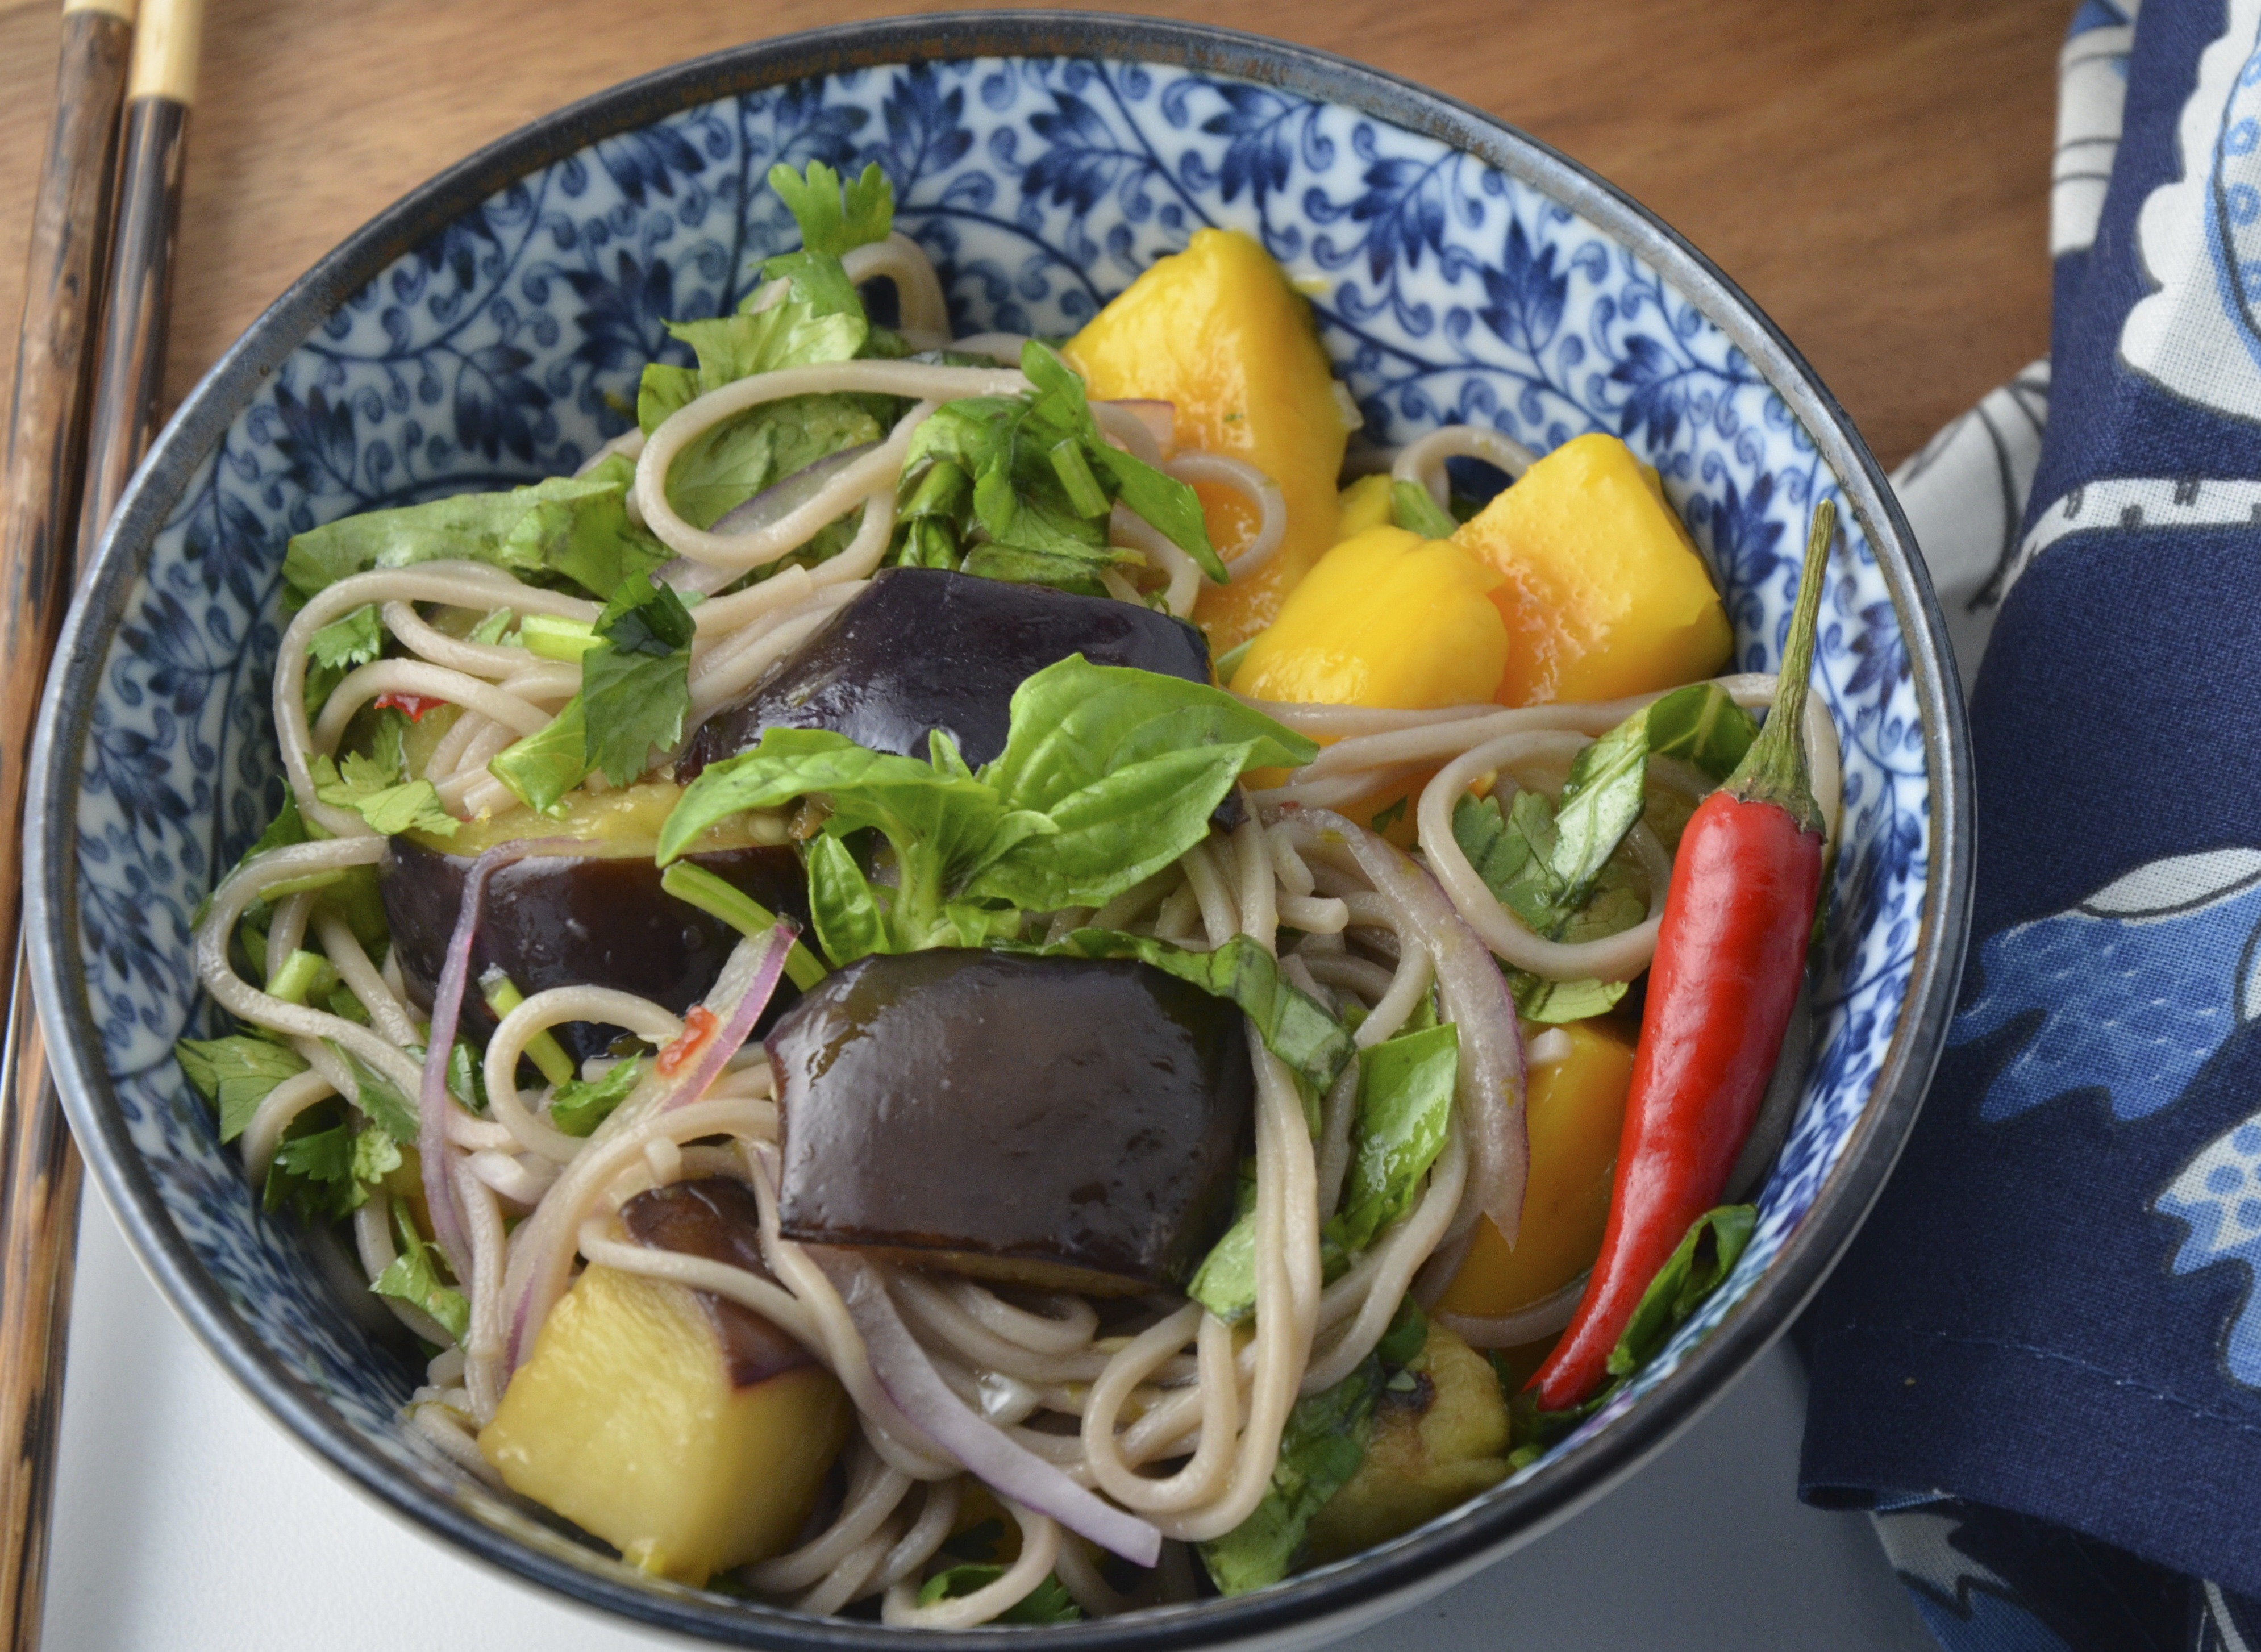 ... soba noodles soba noodles with mango and soba noodles with eggplant